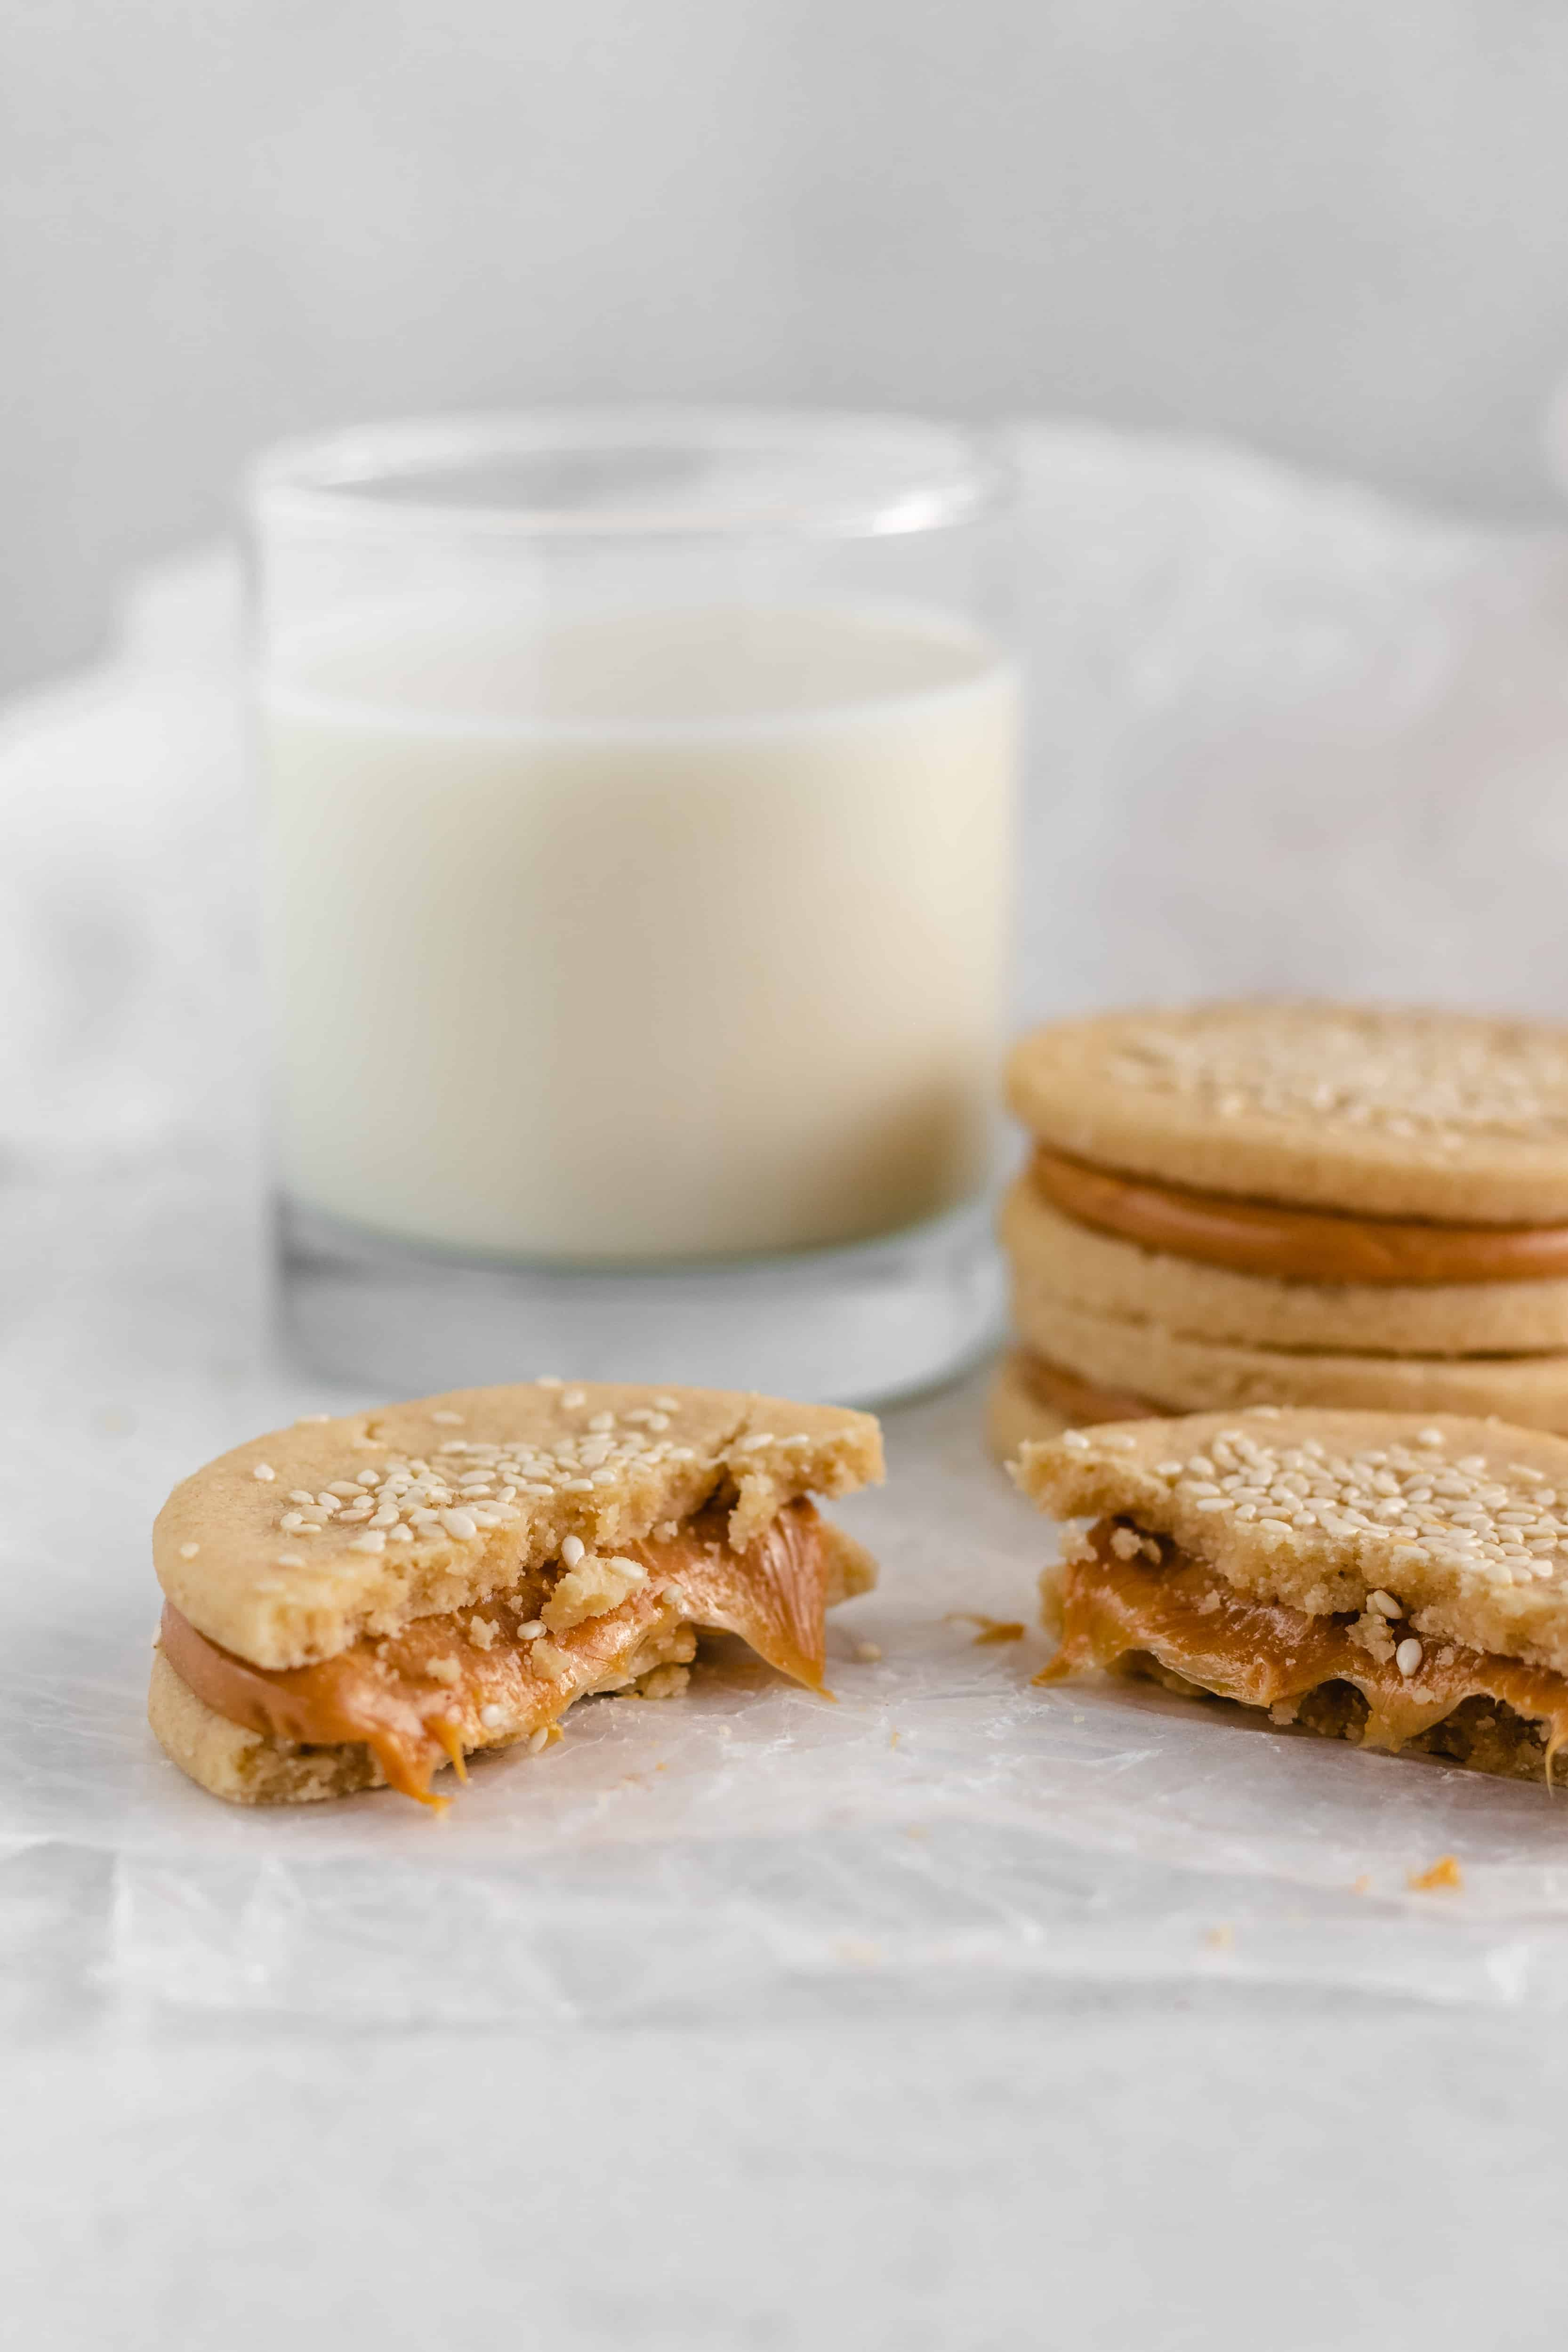 Tahini Shortbread CooButtery and richTahini Cookies are sandwichedtogether with dulce de leche for a decadent treat.kies with Dulce de Leche